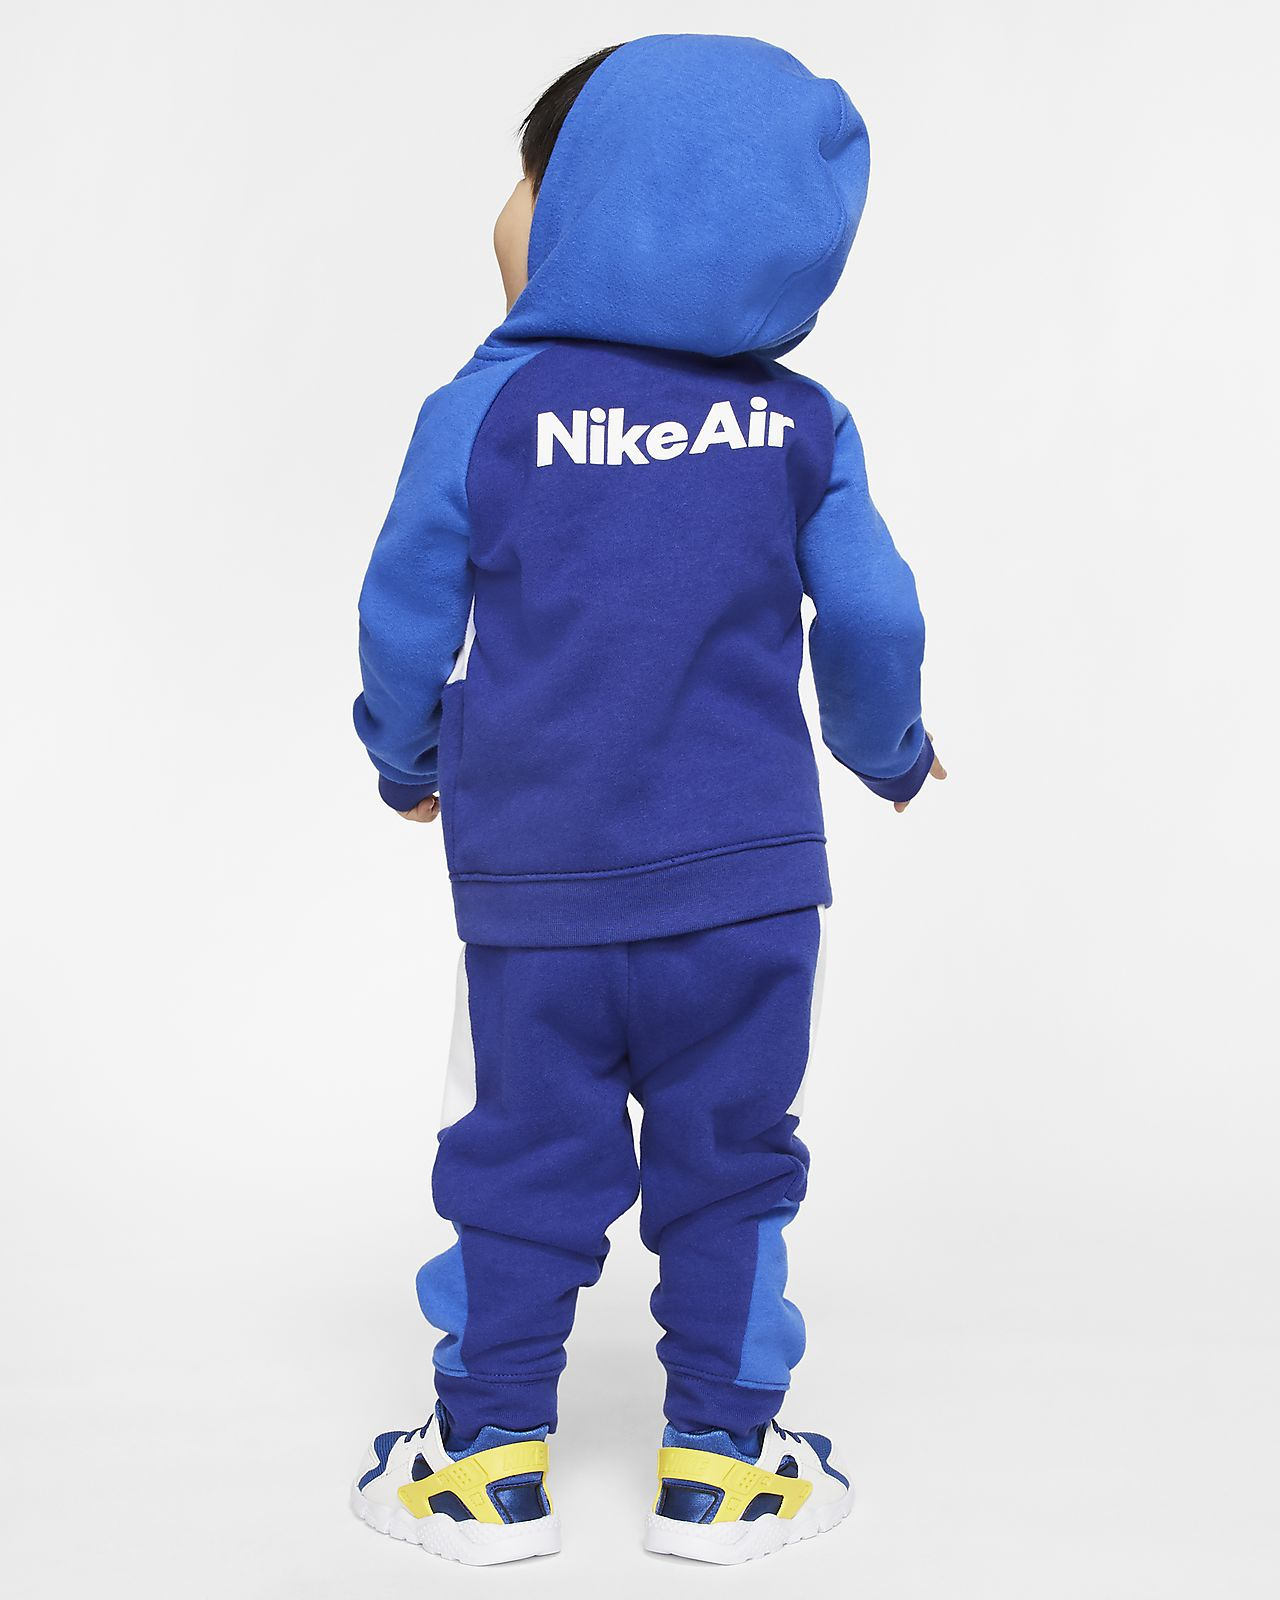 Nike Air Baby (12 24M) Hoodie and Joggers Set